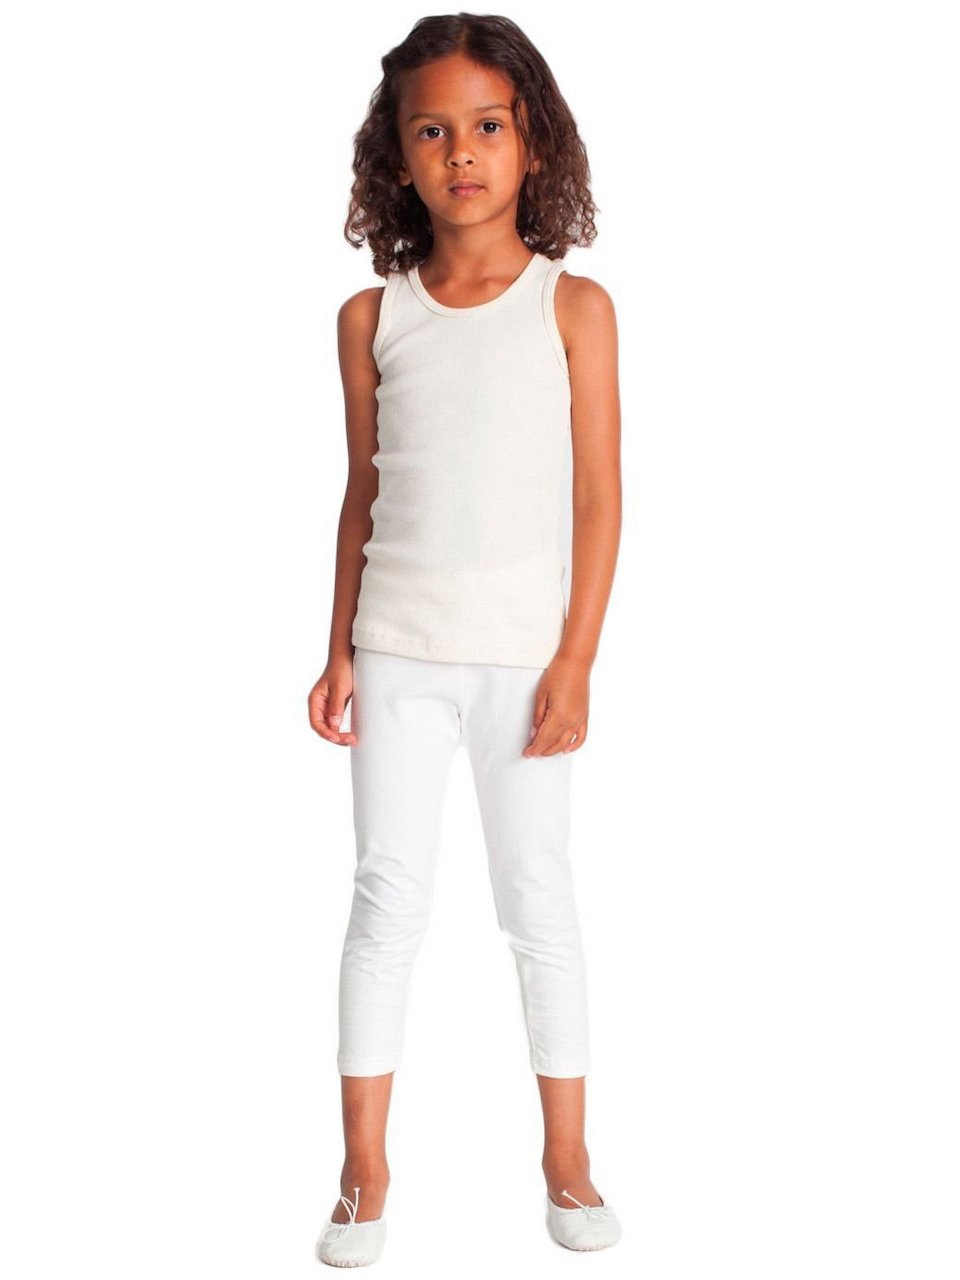 Vivian's Fashions Capri Leggings - Girls, Cotton (White, X-Large)